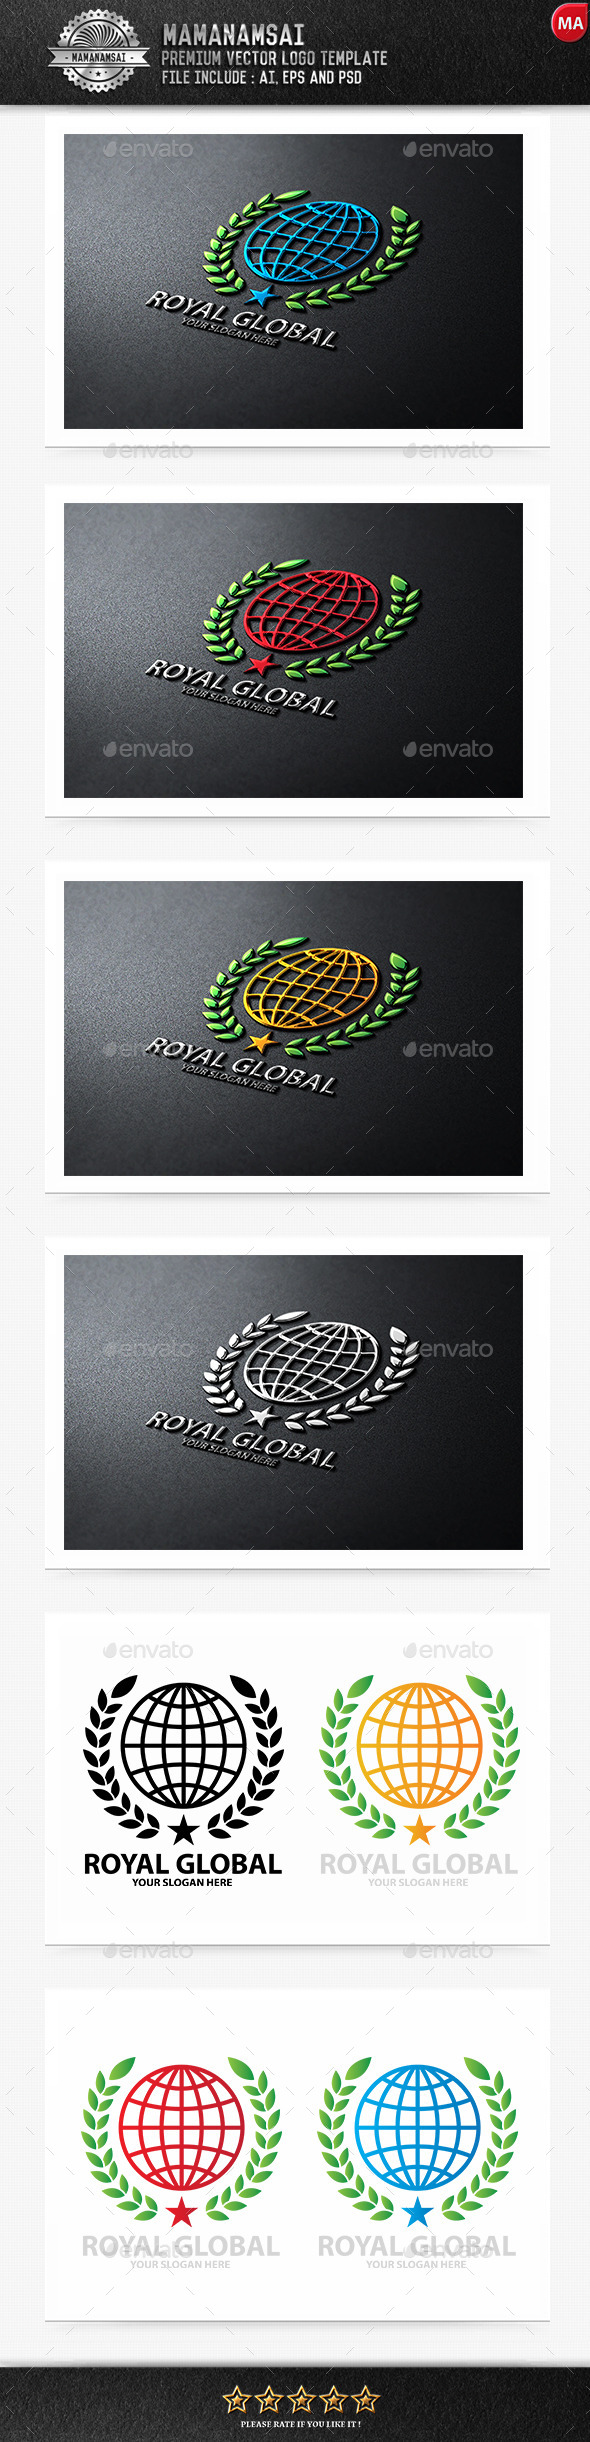 Royal Global Logo - Logo Templates